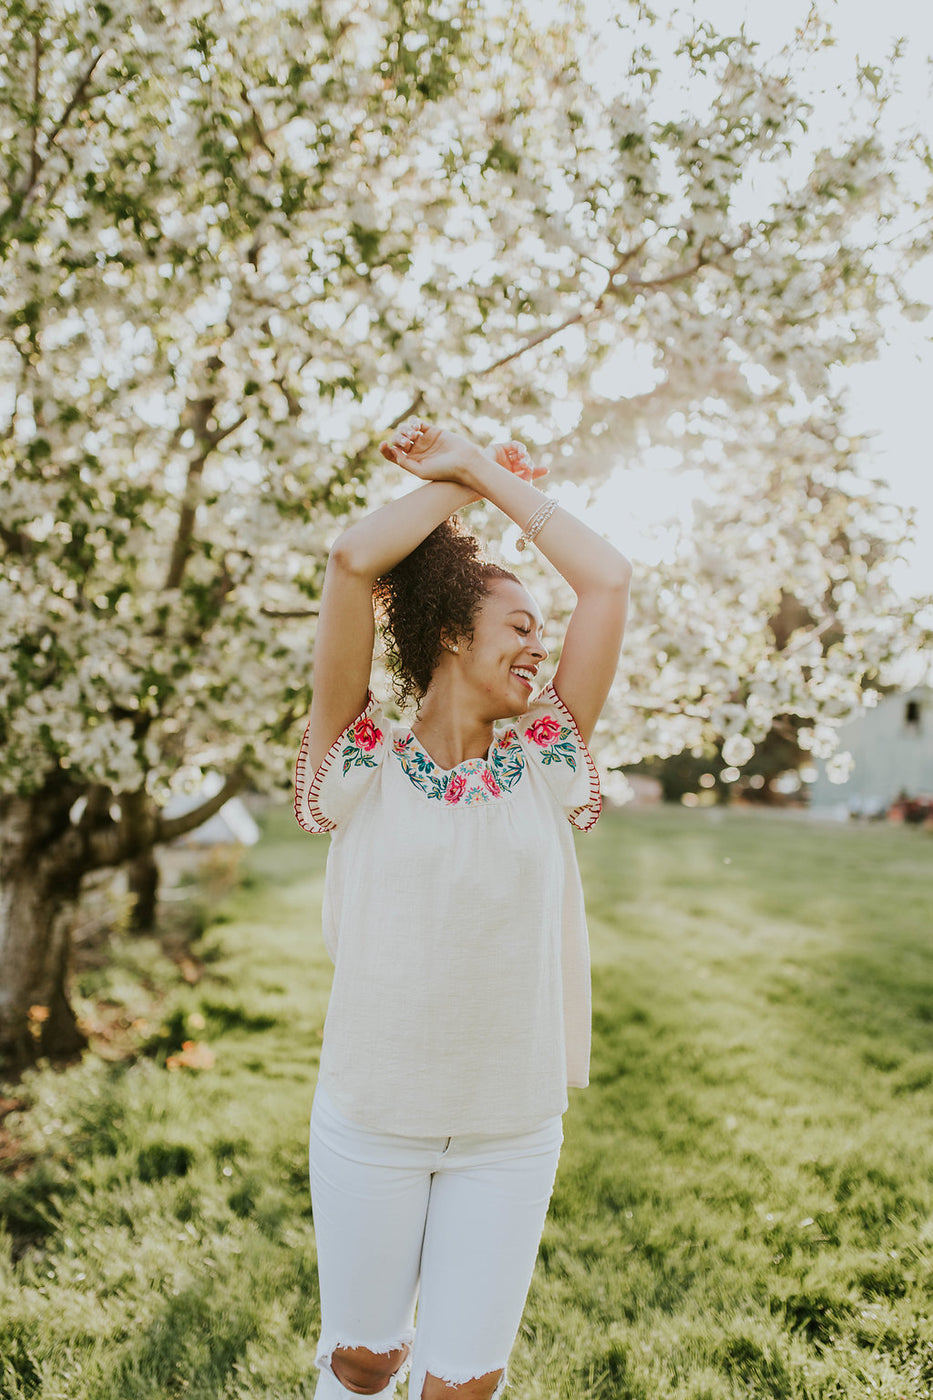 Summer Embroidered Outfit Inspiration | ROOLEE